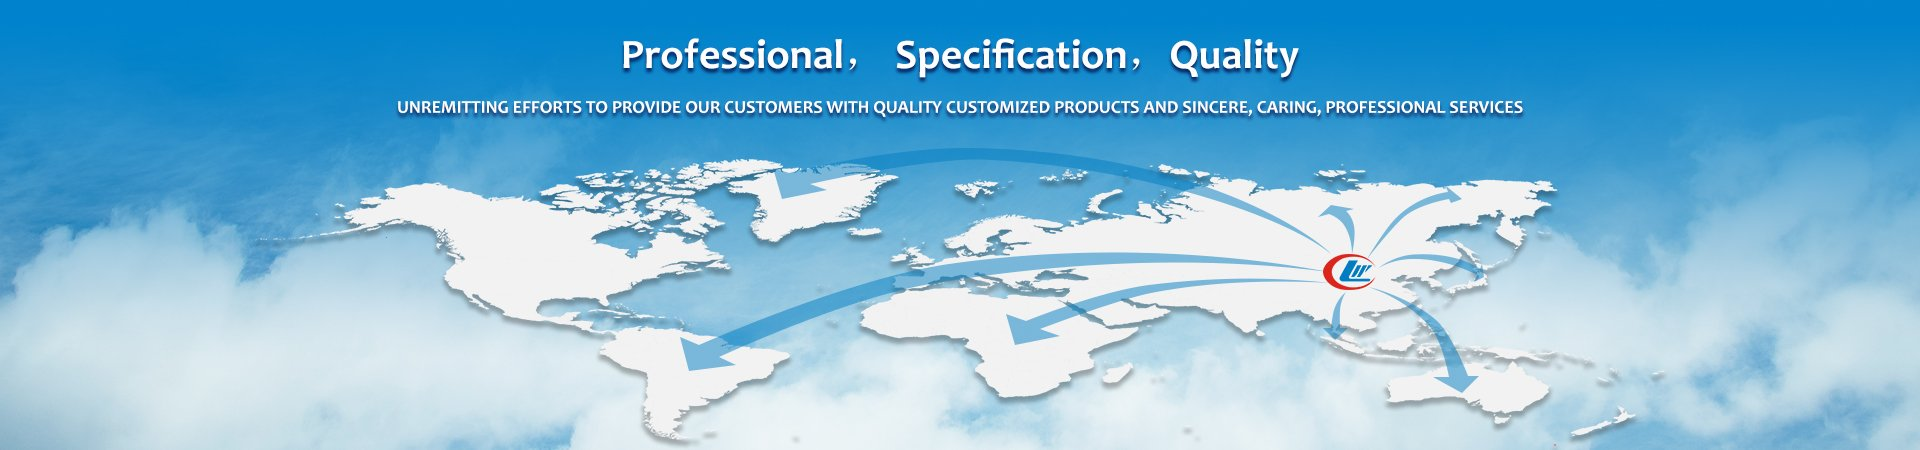 Professional, Specification, Quality